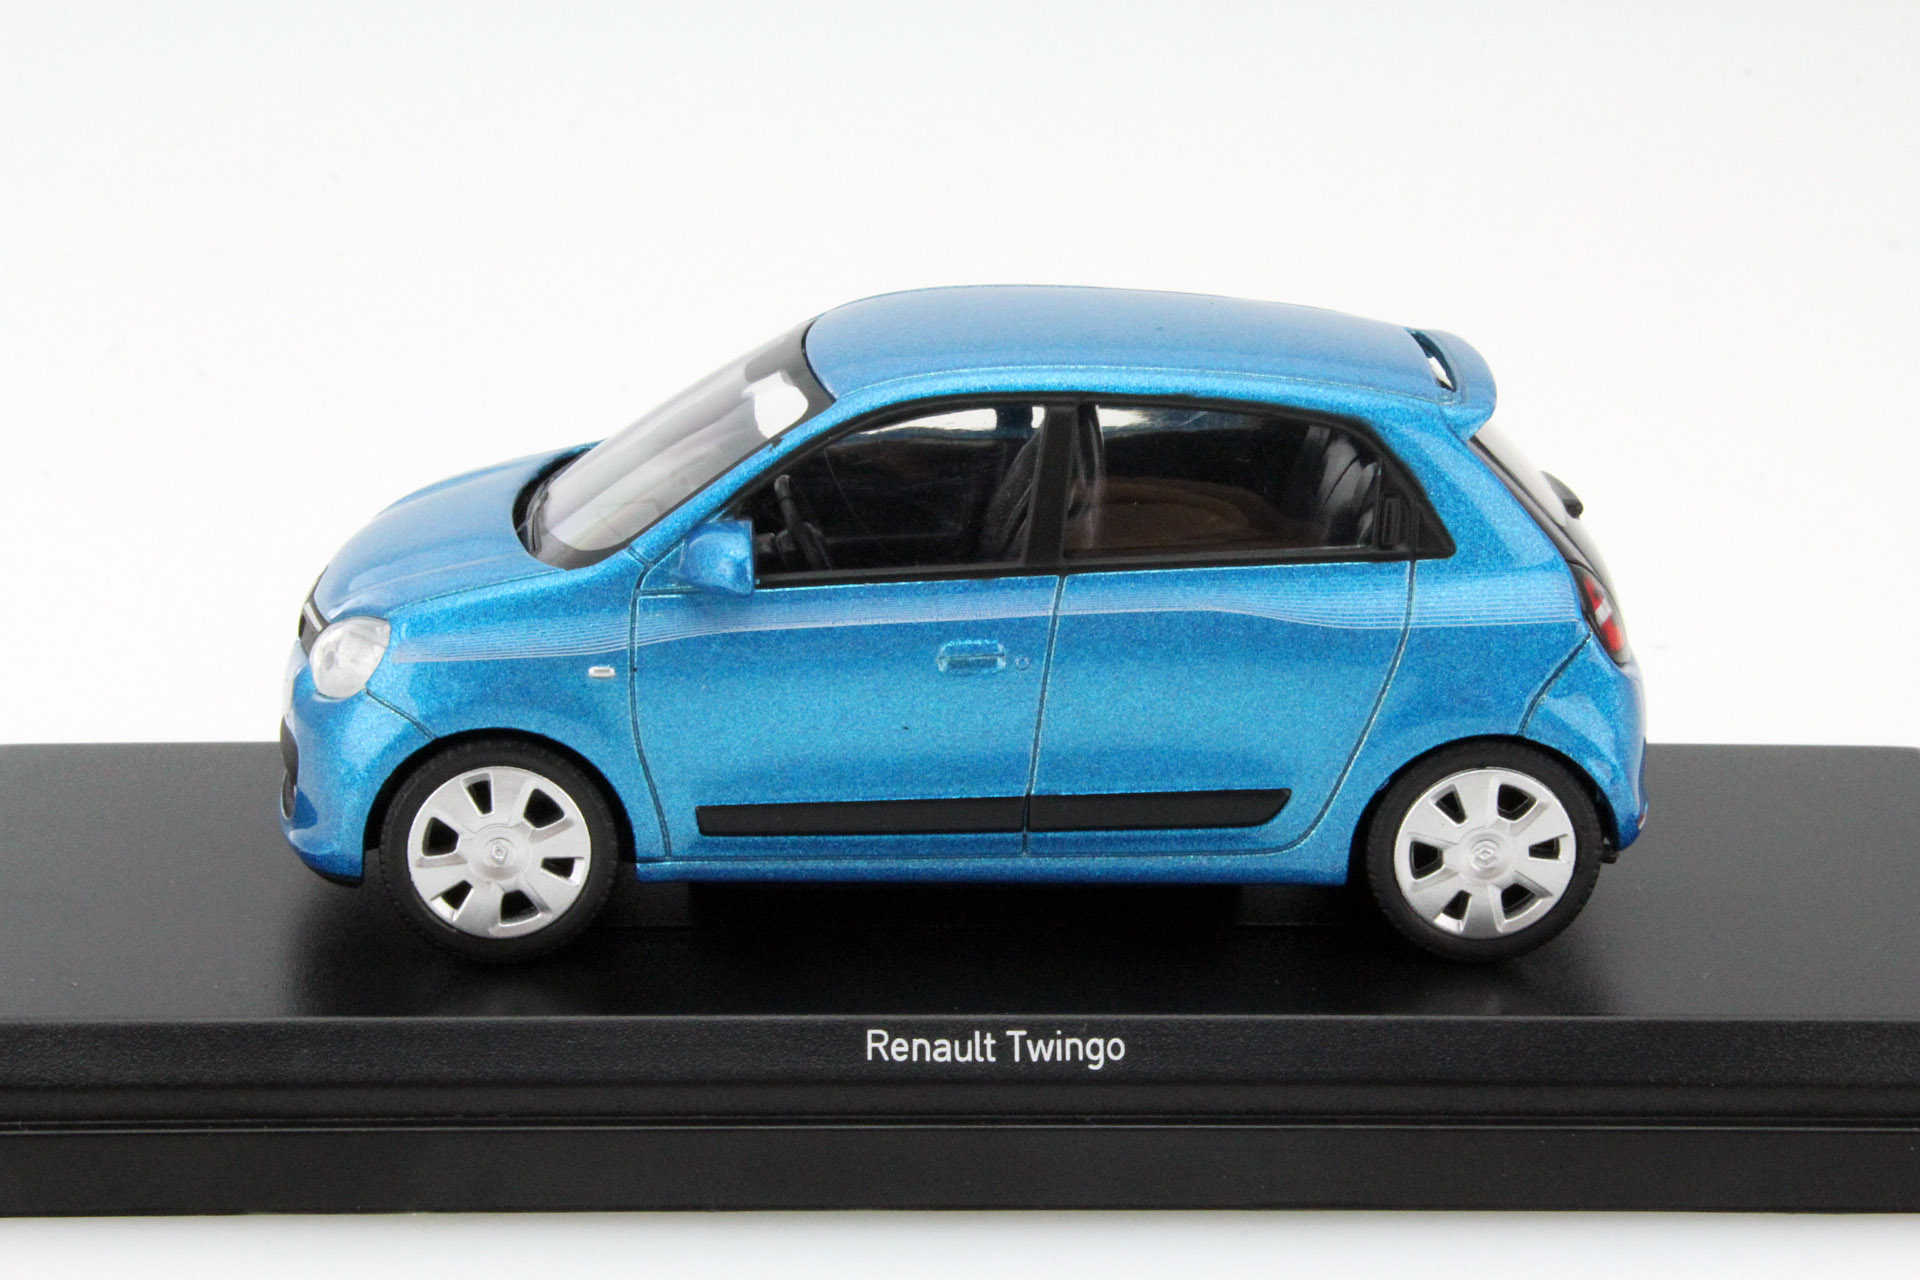 renault twingo 2014 pacific blue die cast model norev 517413. Black Bedroom Furniture Sets. Home Design Ideas